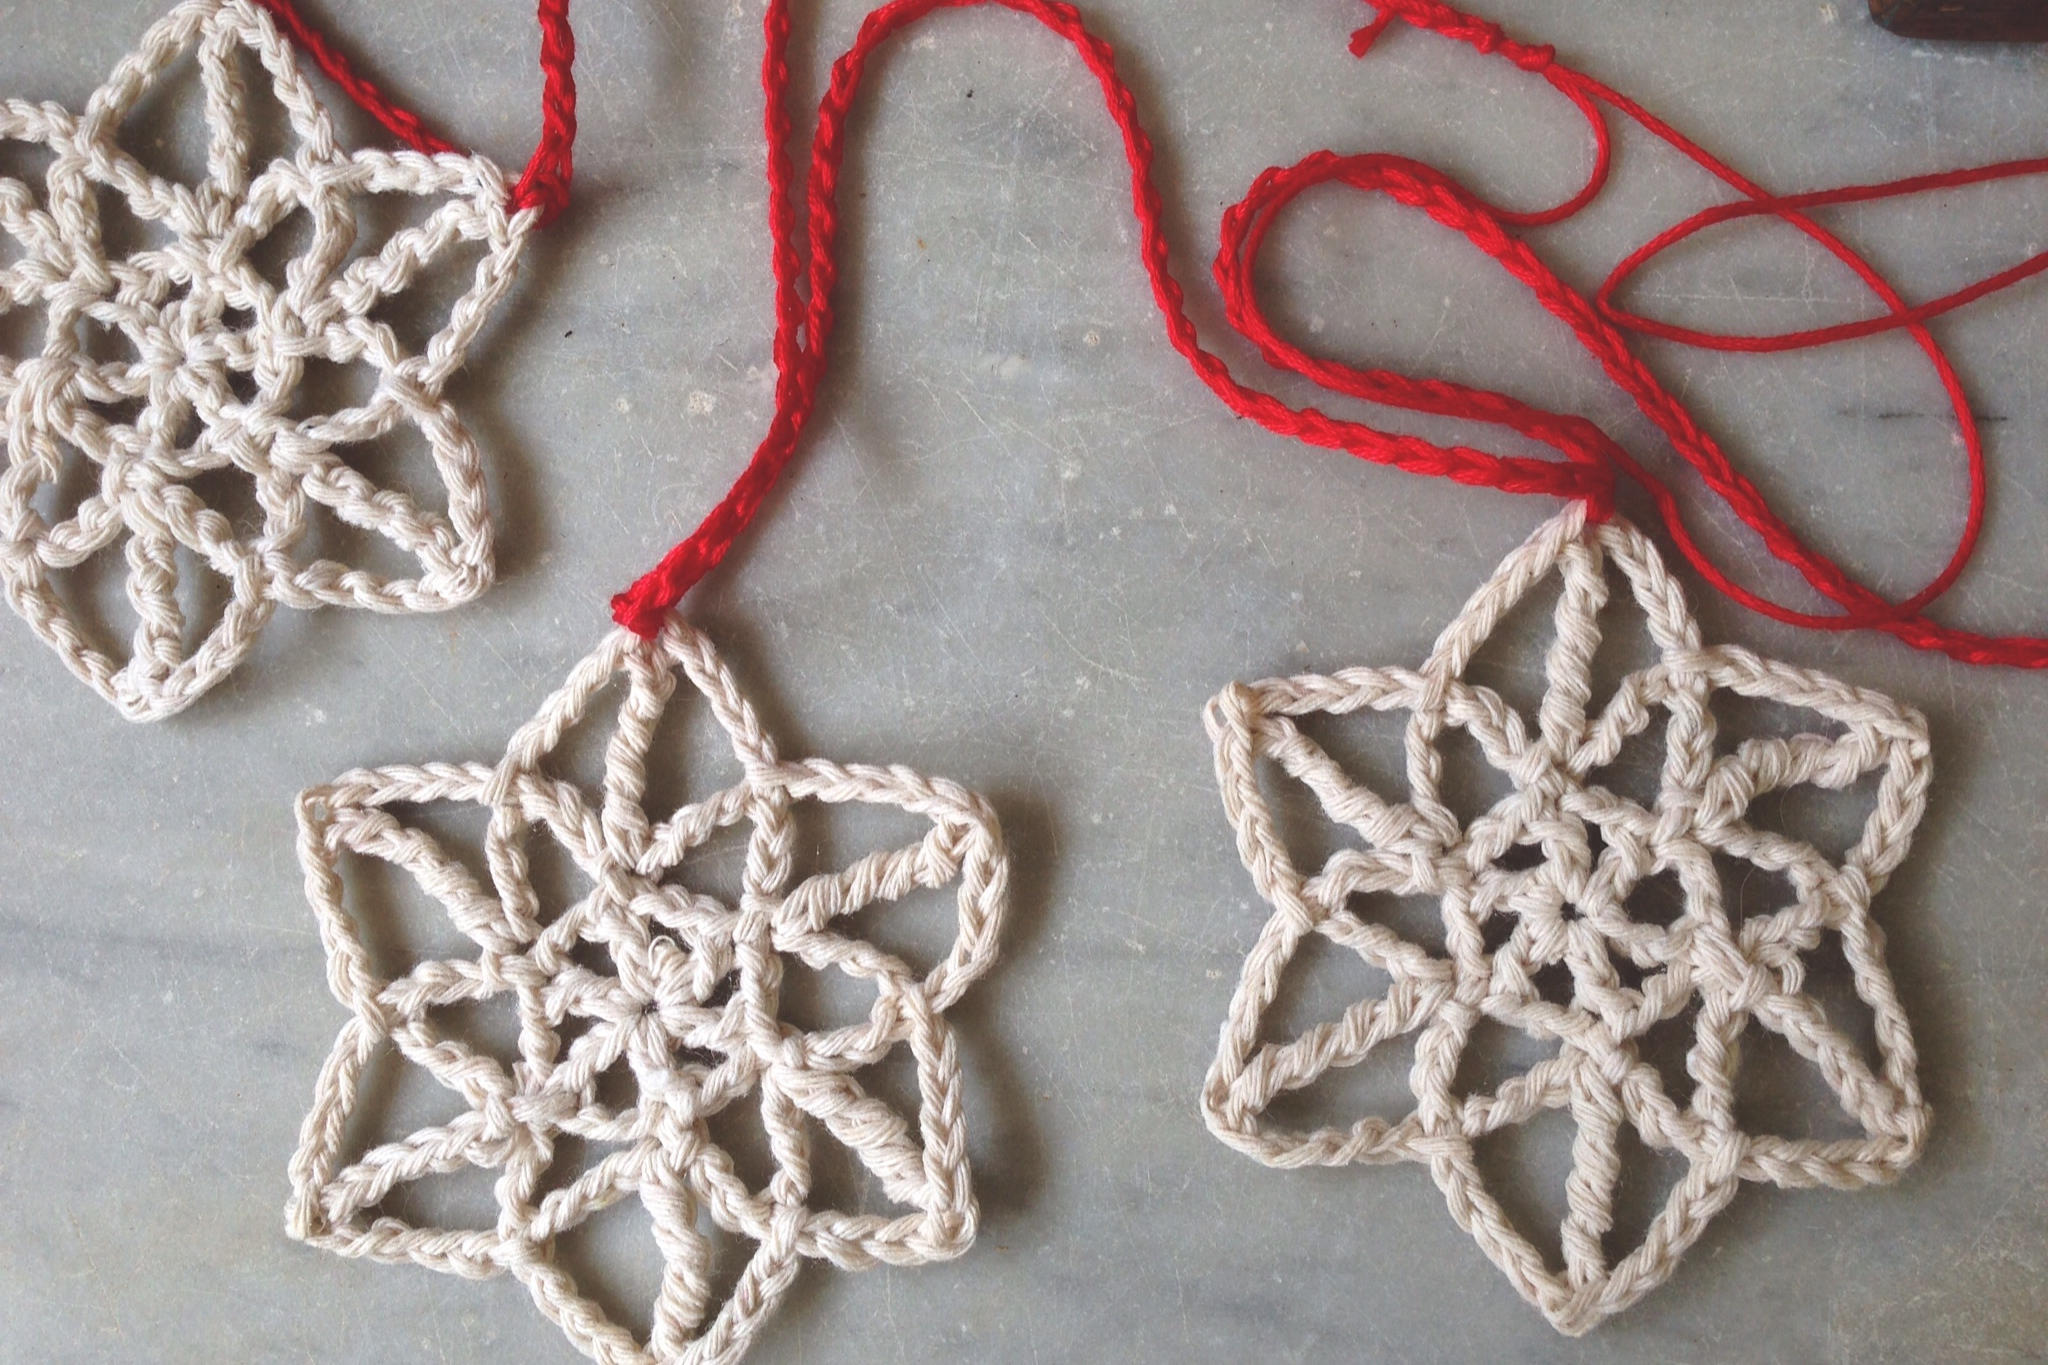 33 Crochet Snowflake Patterns Guide Coaster Diagrams A Few Pretty Snowflakes Garland